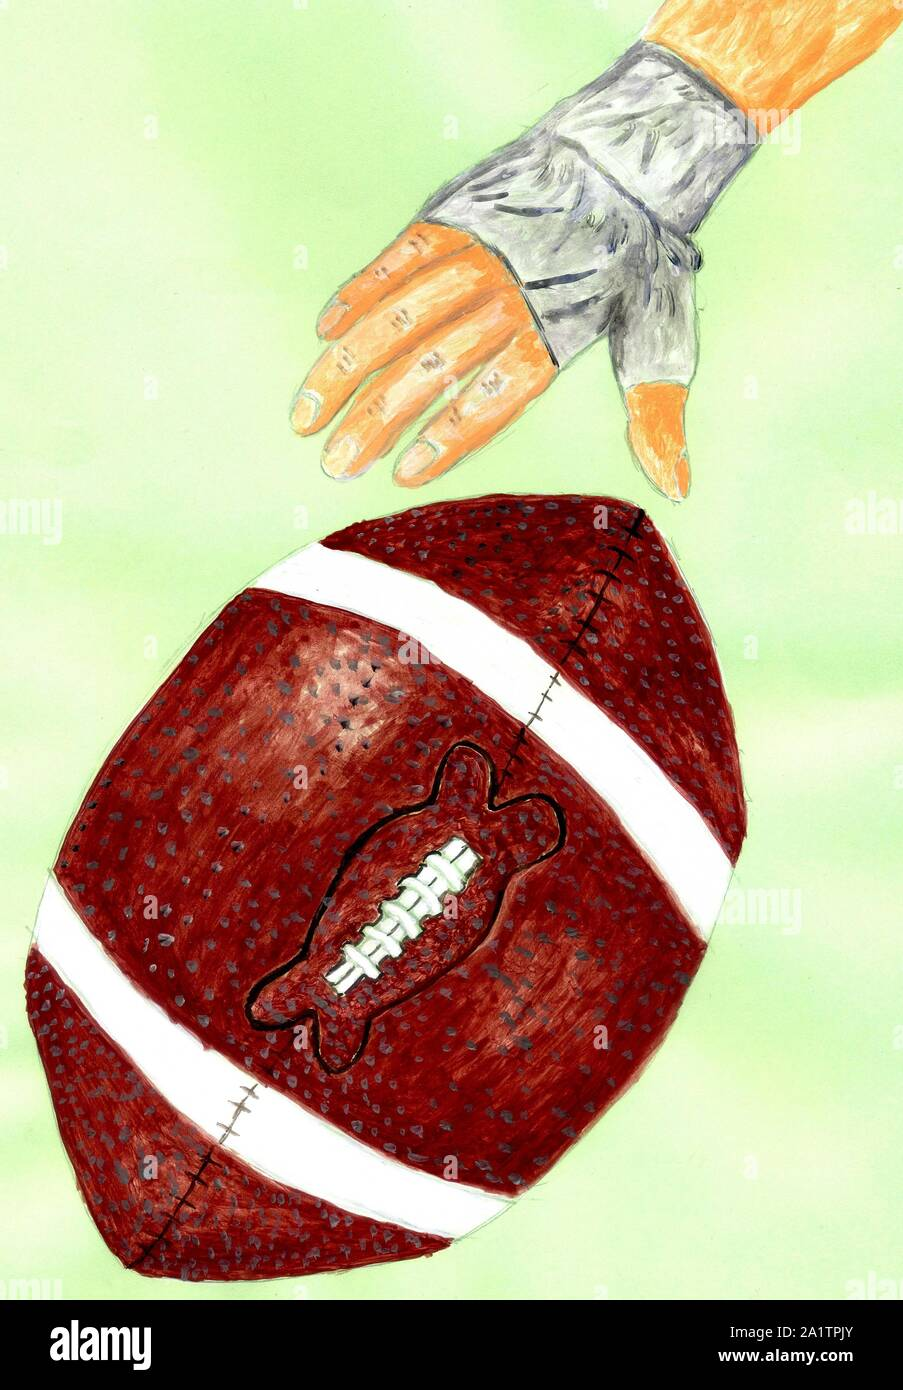 Grunge Sketch Of Rugby Ball Hand Drawn Illustration Stock Photo Alamy